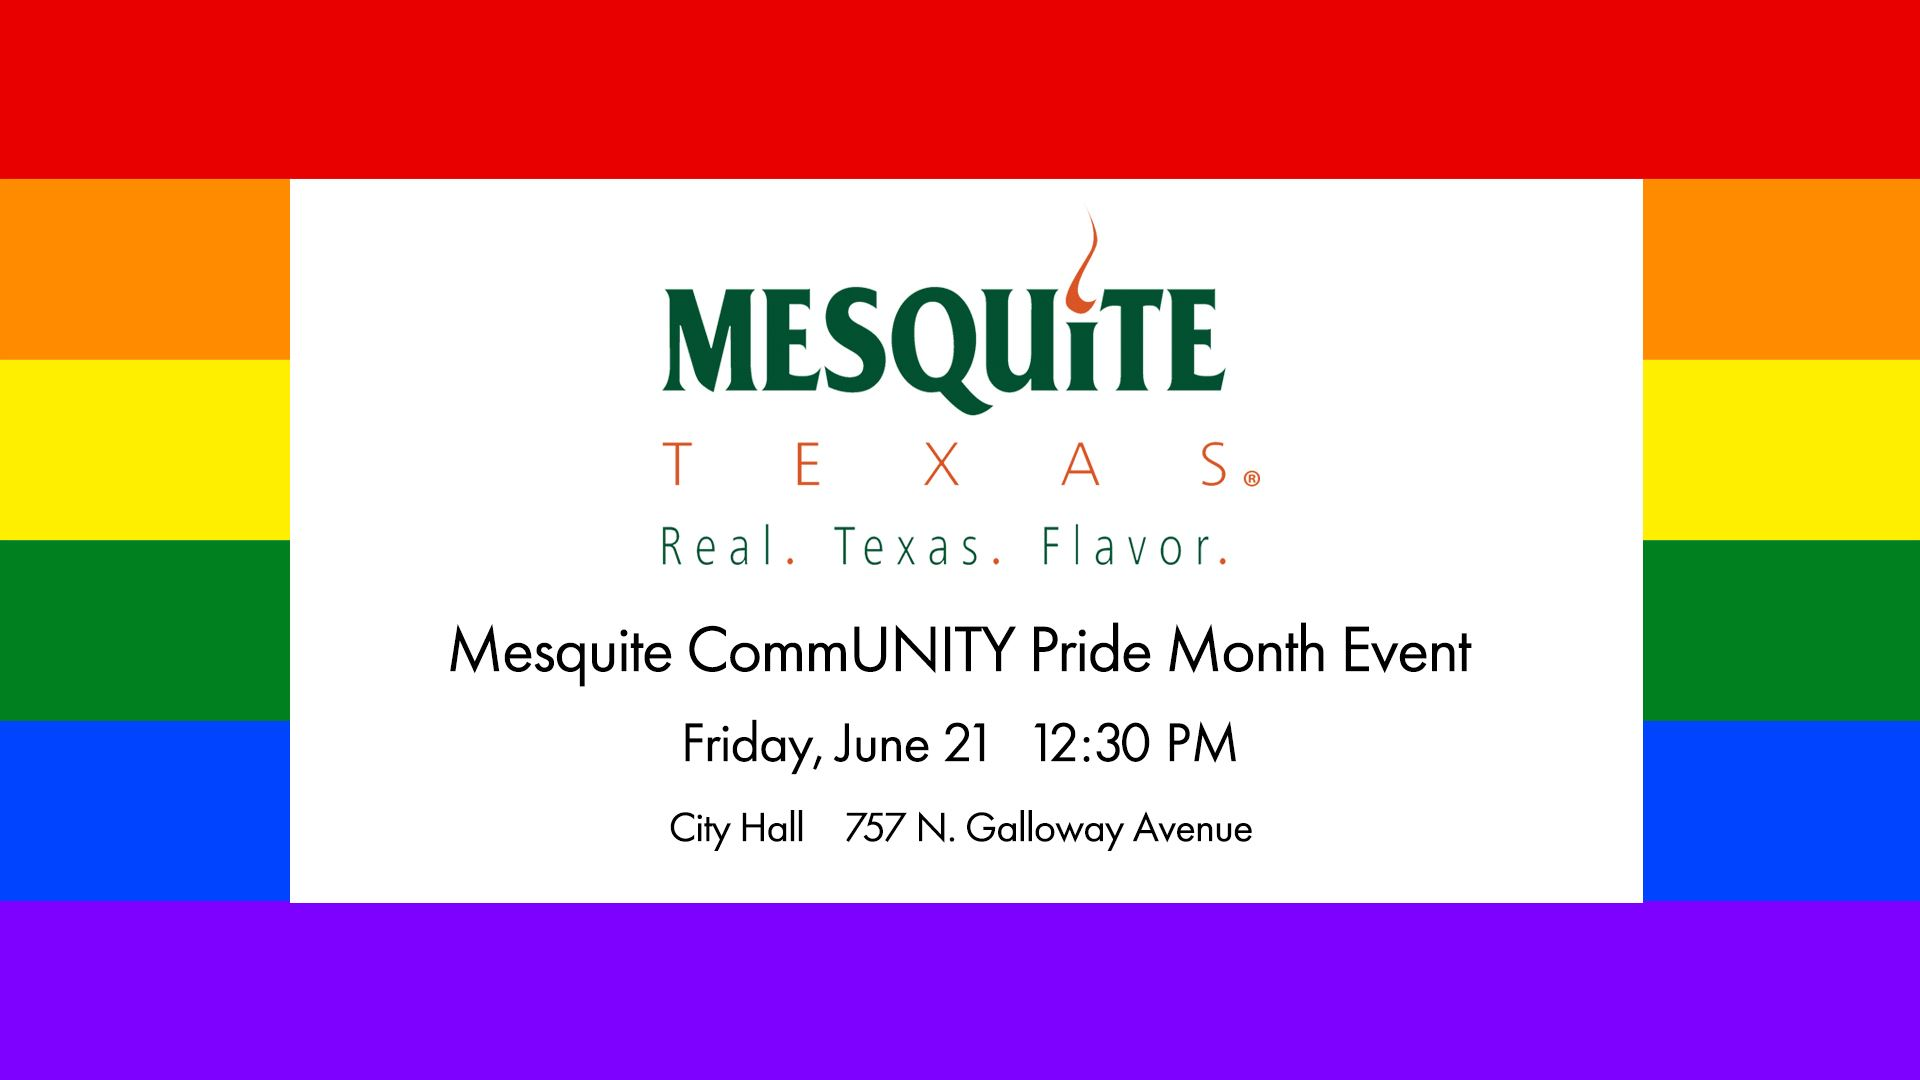 2019 Mesquite CommUNITY Pride Event